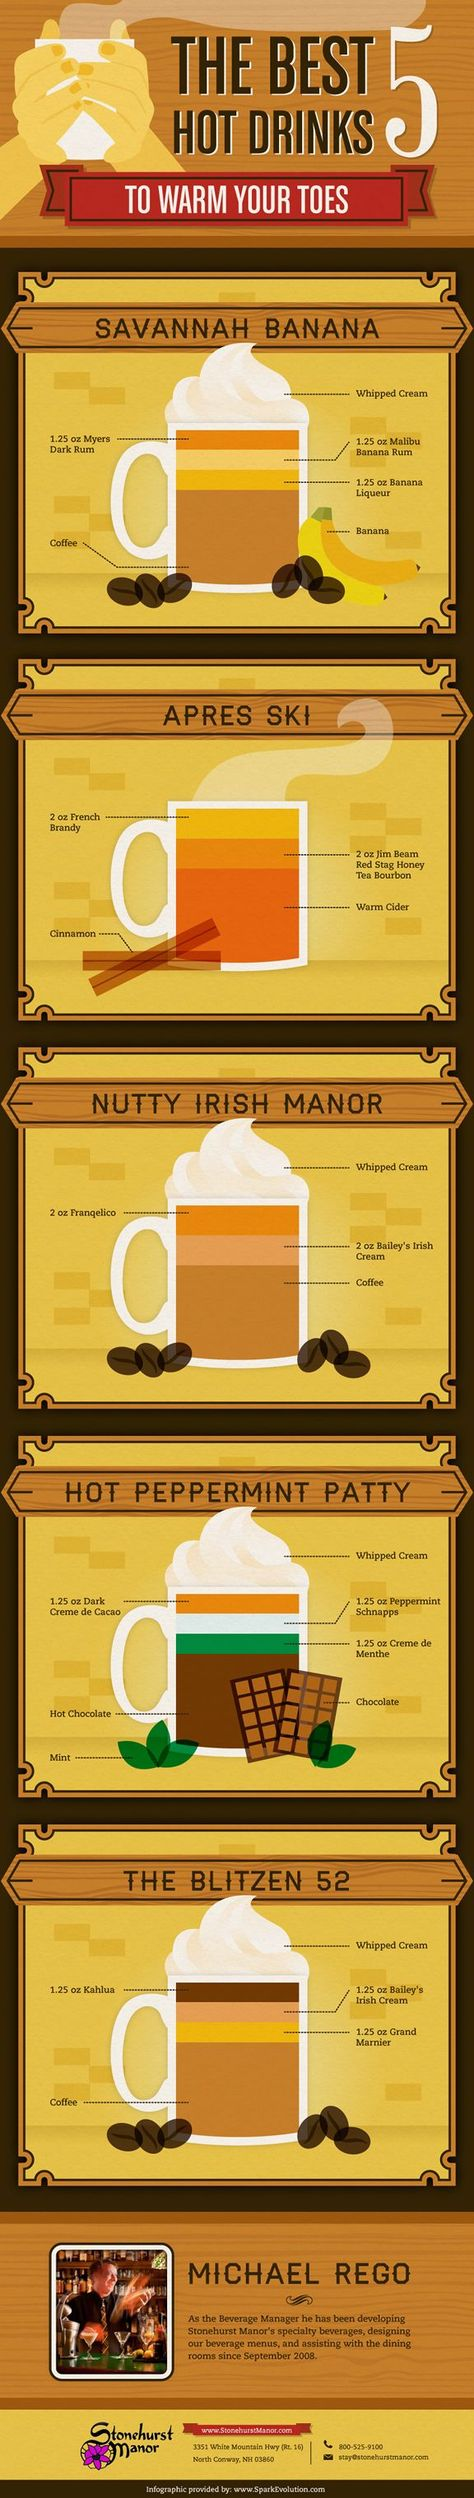 Warming Winter Drinks With A Twist #infographic #drinks